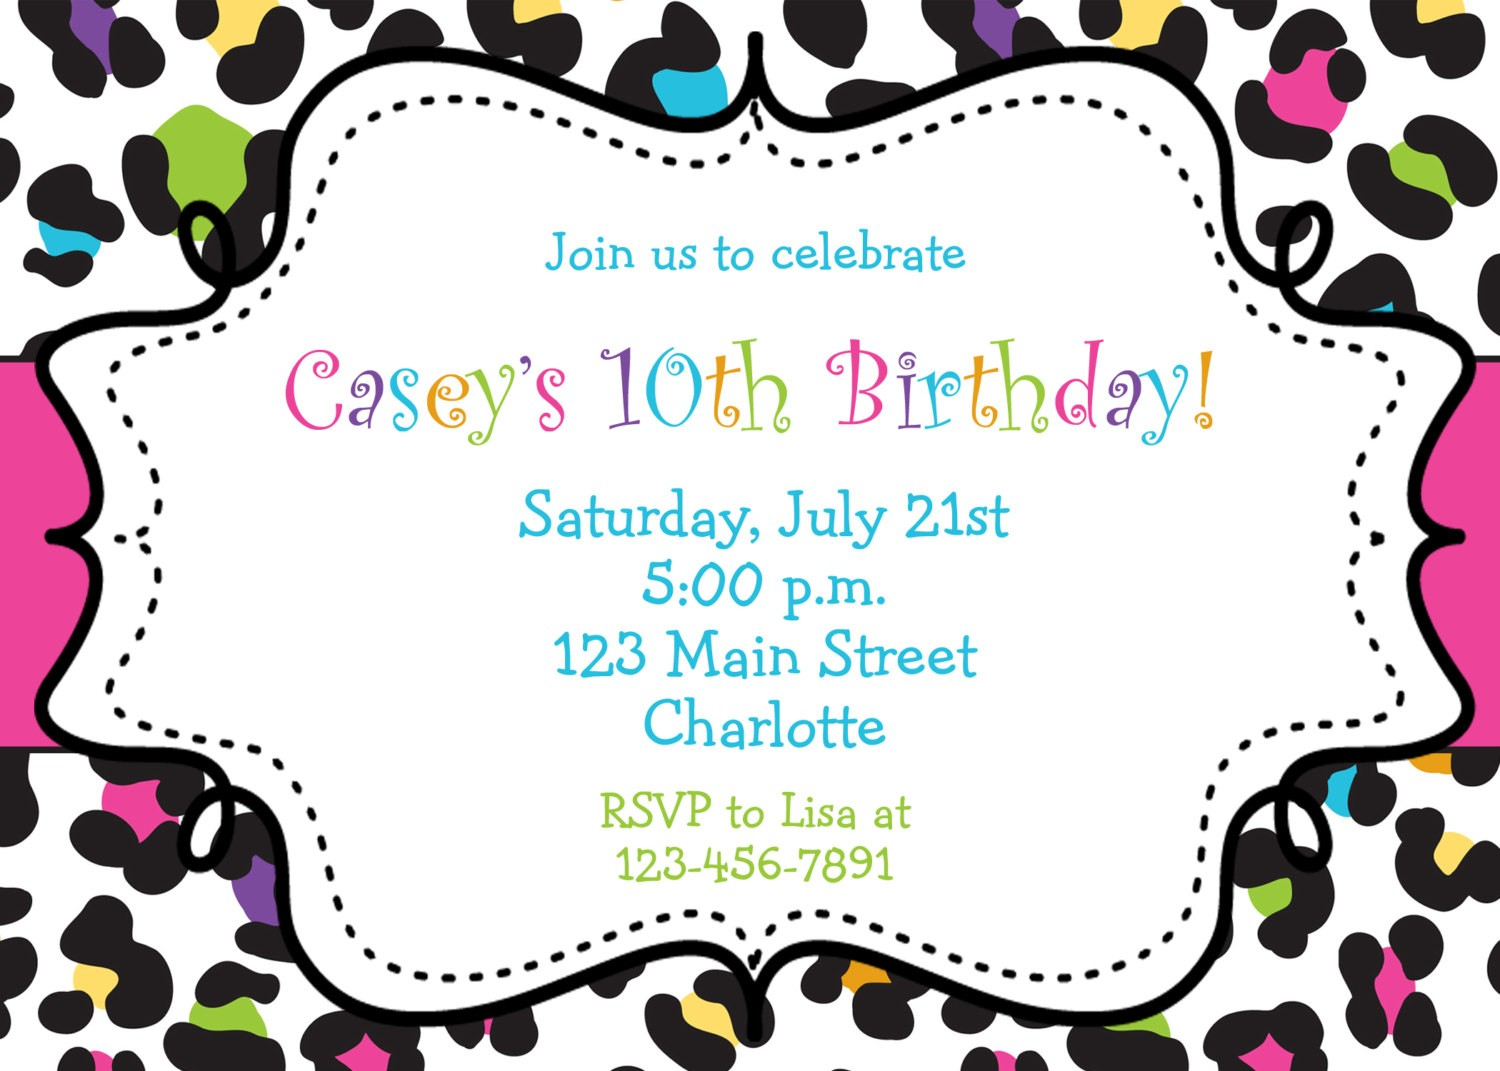 birthday invitation design online free ; party-invitations-online-with-looking-design-the-birthday-party-invitations-online-birthday-invitation-designs-ideas-egreeting-ecards-com